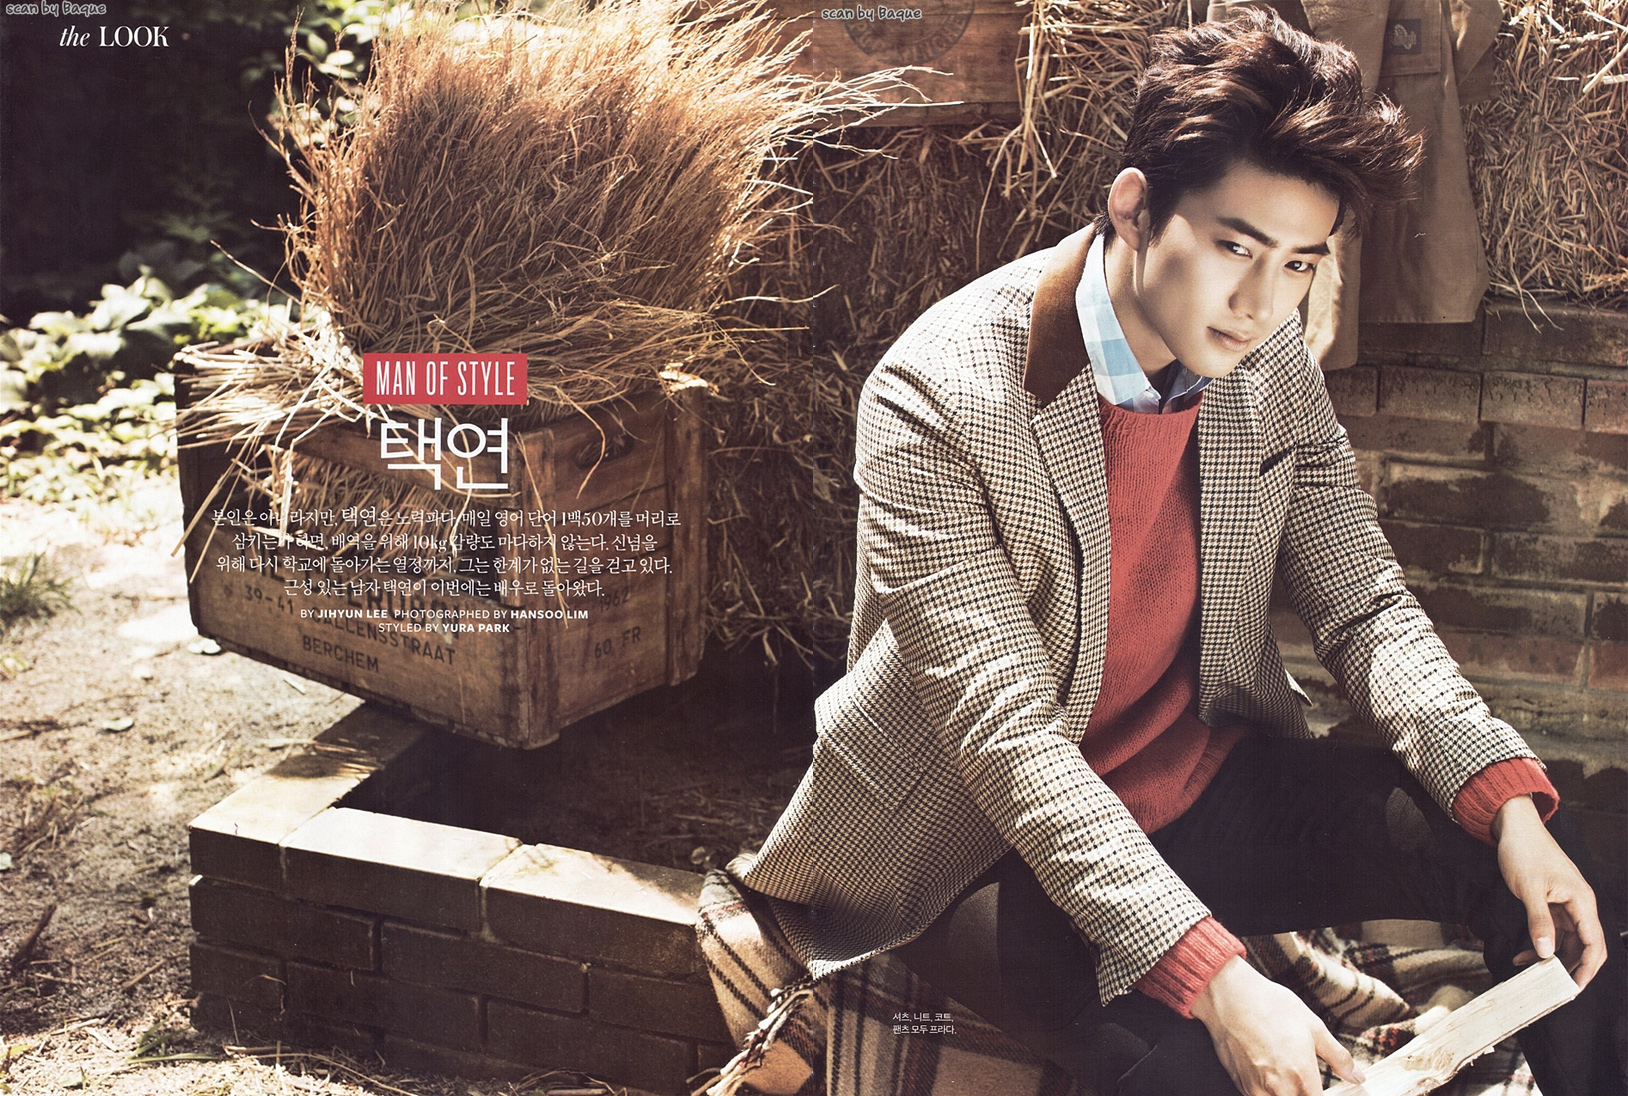 PICS][SCANS] Taecyeon for InStyle Magazine TAECYEON INDONESIA 1628x1096